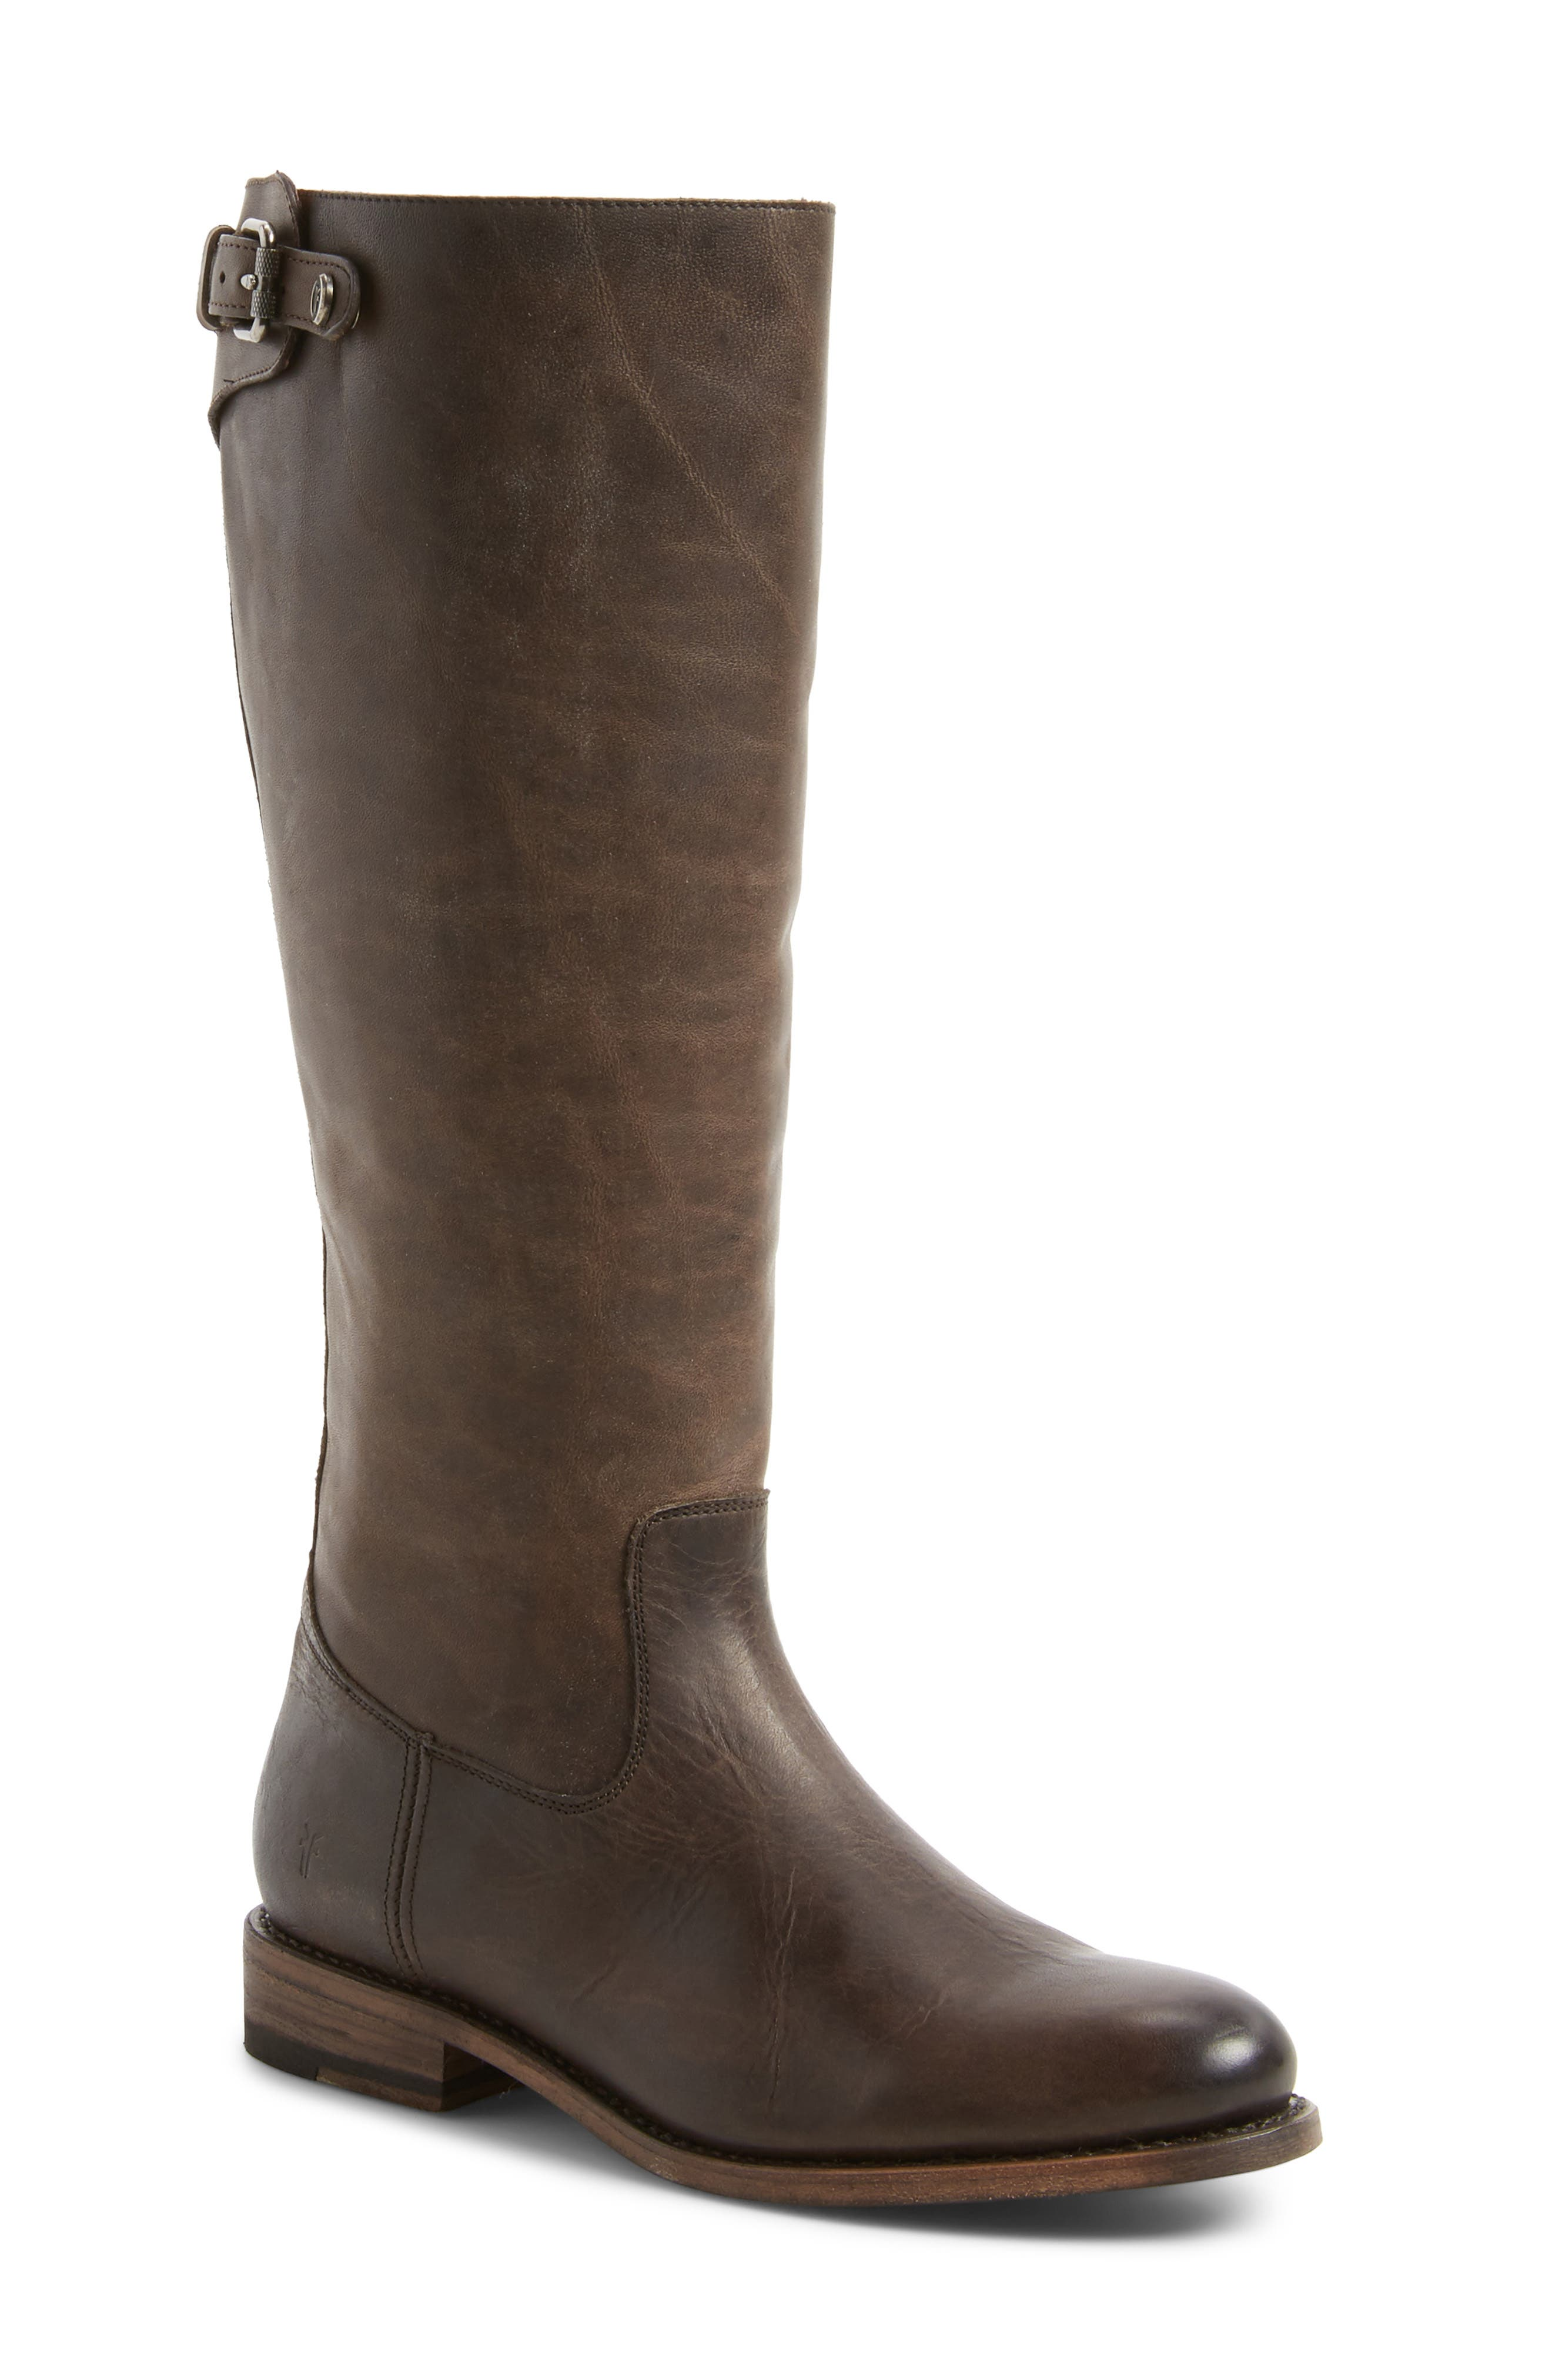 Main Image - Frye Jayden Buckle Back Zip Boot (Women) (Regular & Extended Calf)